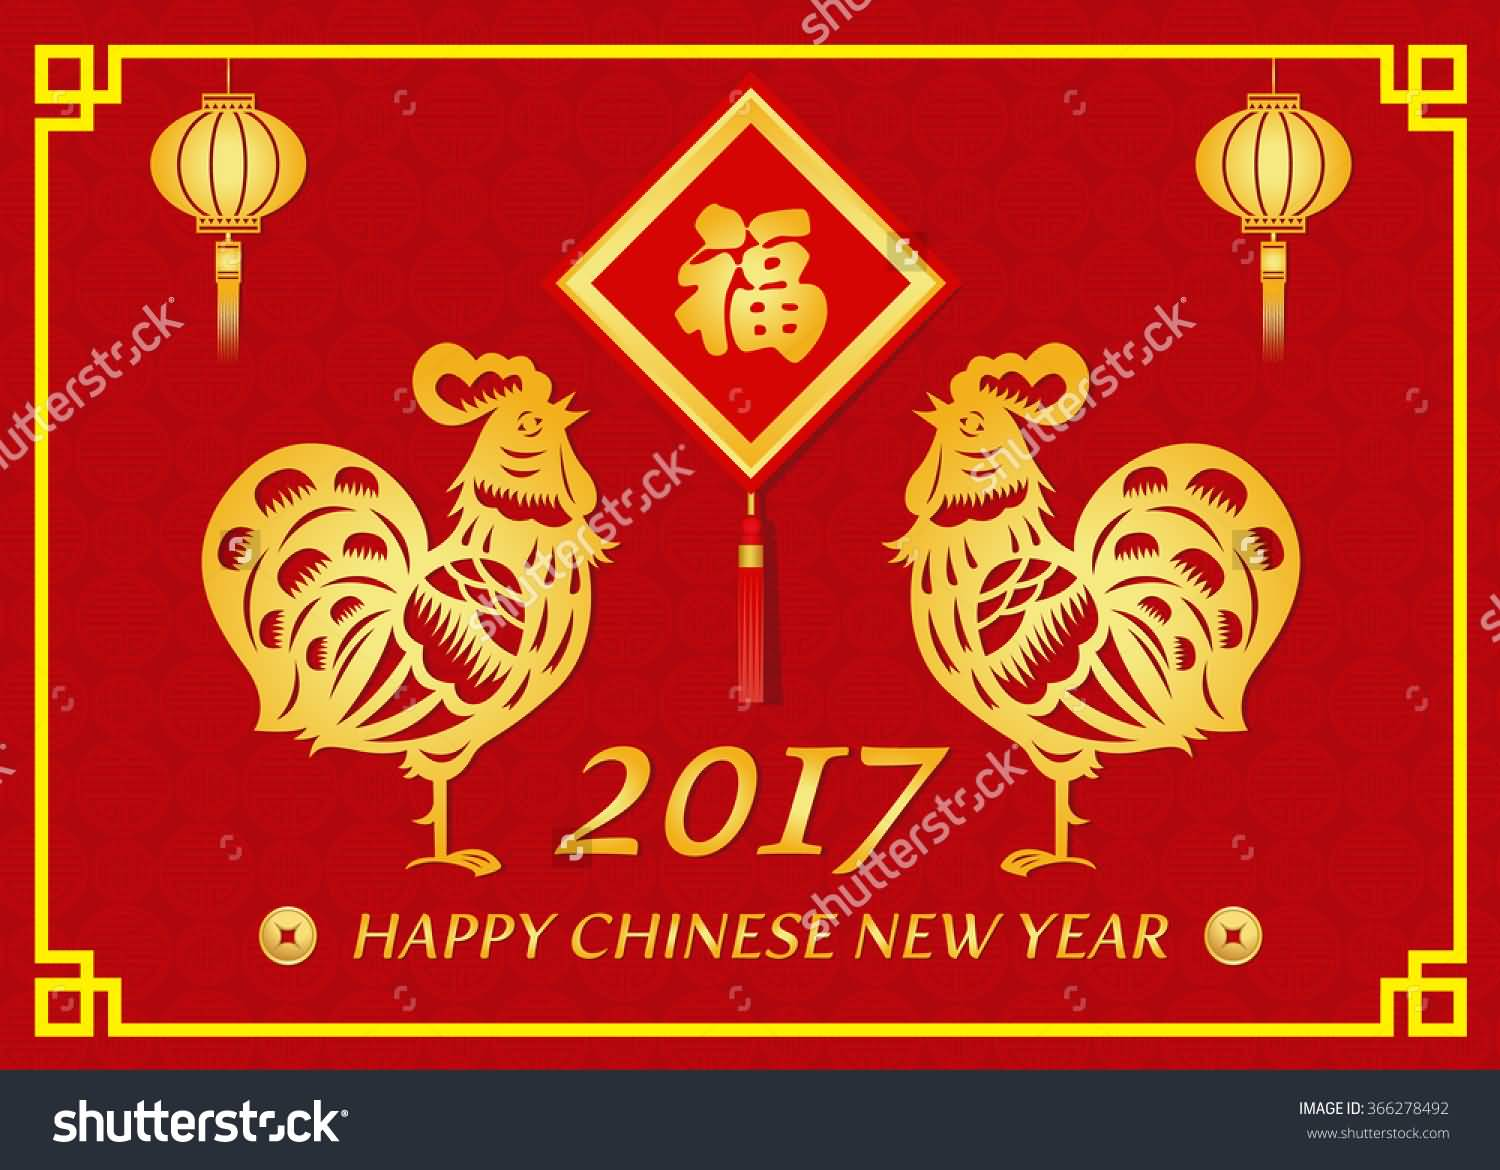 New year 2017 greeting pictures year of rooster happy chinese new year - 2017 Happy Chinese New Year Roosters Greeting Card